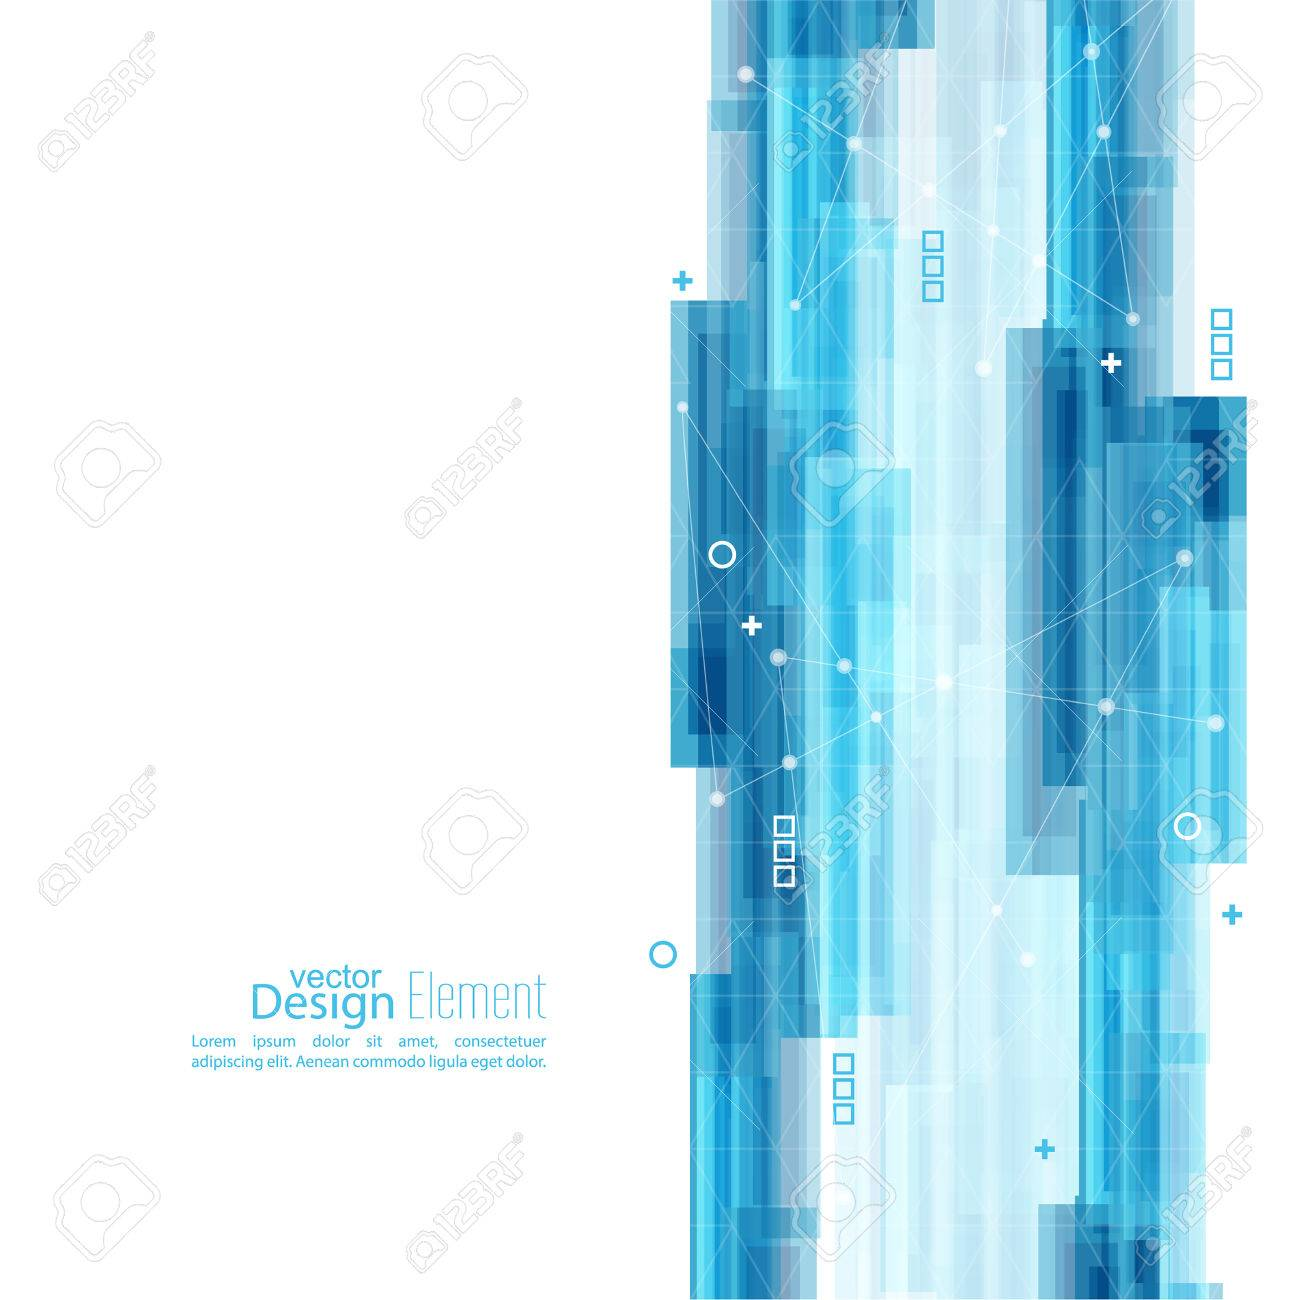 Abstract background with blue stripes. Concept new technology and dynamic motion. Digital Data Visualization. For cover book, brochure, flyer, poster, magazine, booklet, leaflet - 47067252